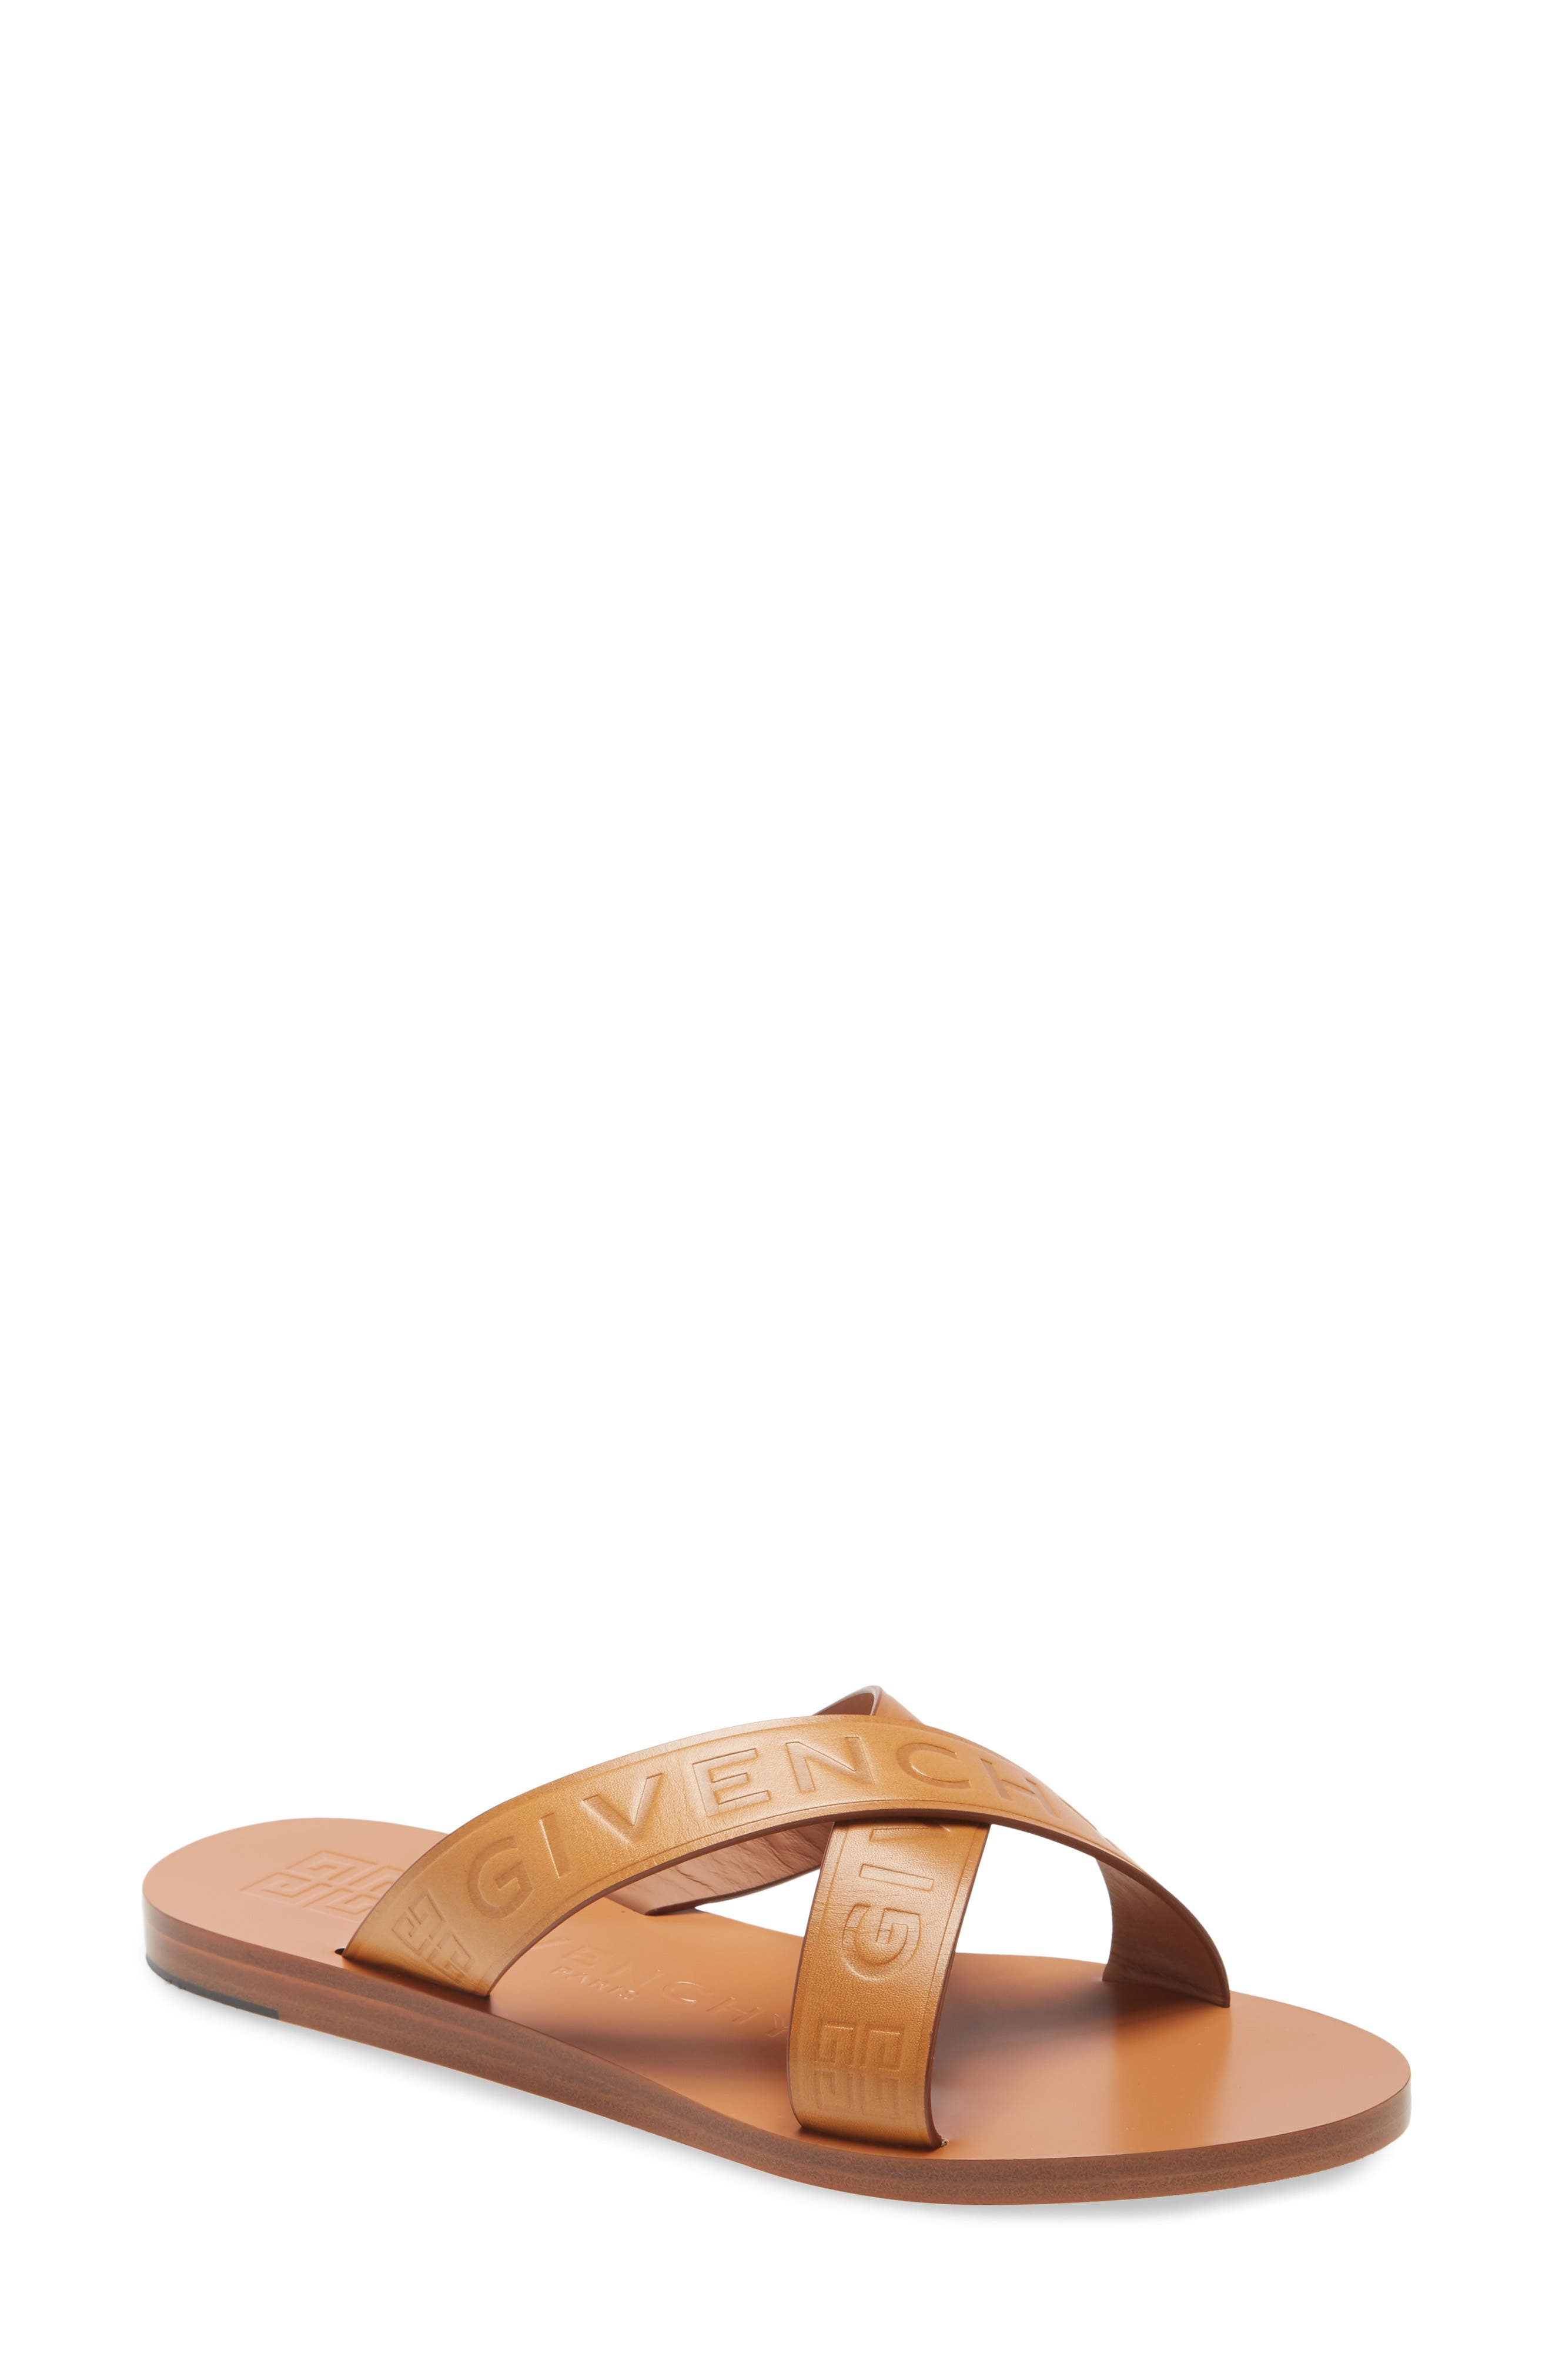 Pre-order this style today! Add to Shopping Bag to view approximate ship date. You\\\'ll be charged only when your item ships. Givenchy offers laid-back luxury with this vegetable-tanned Italian-leather sandal branded with logo debossing along the crisscrossed straps and footbed. Style Name: Givenchy 4G Logo Crisscross Slide Sandal (Women). Style Number: 6069440. Available in stores.